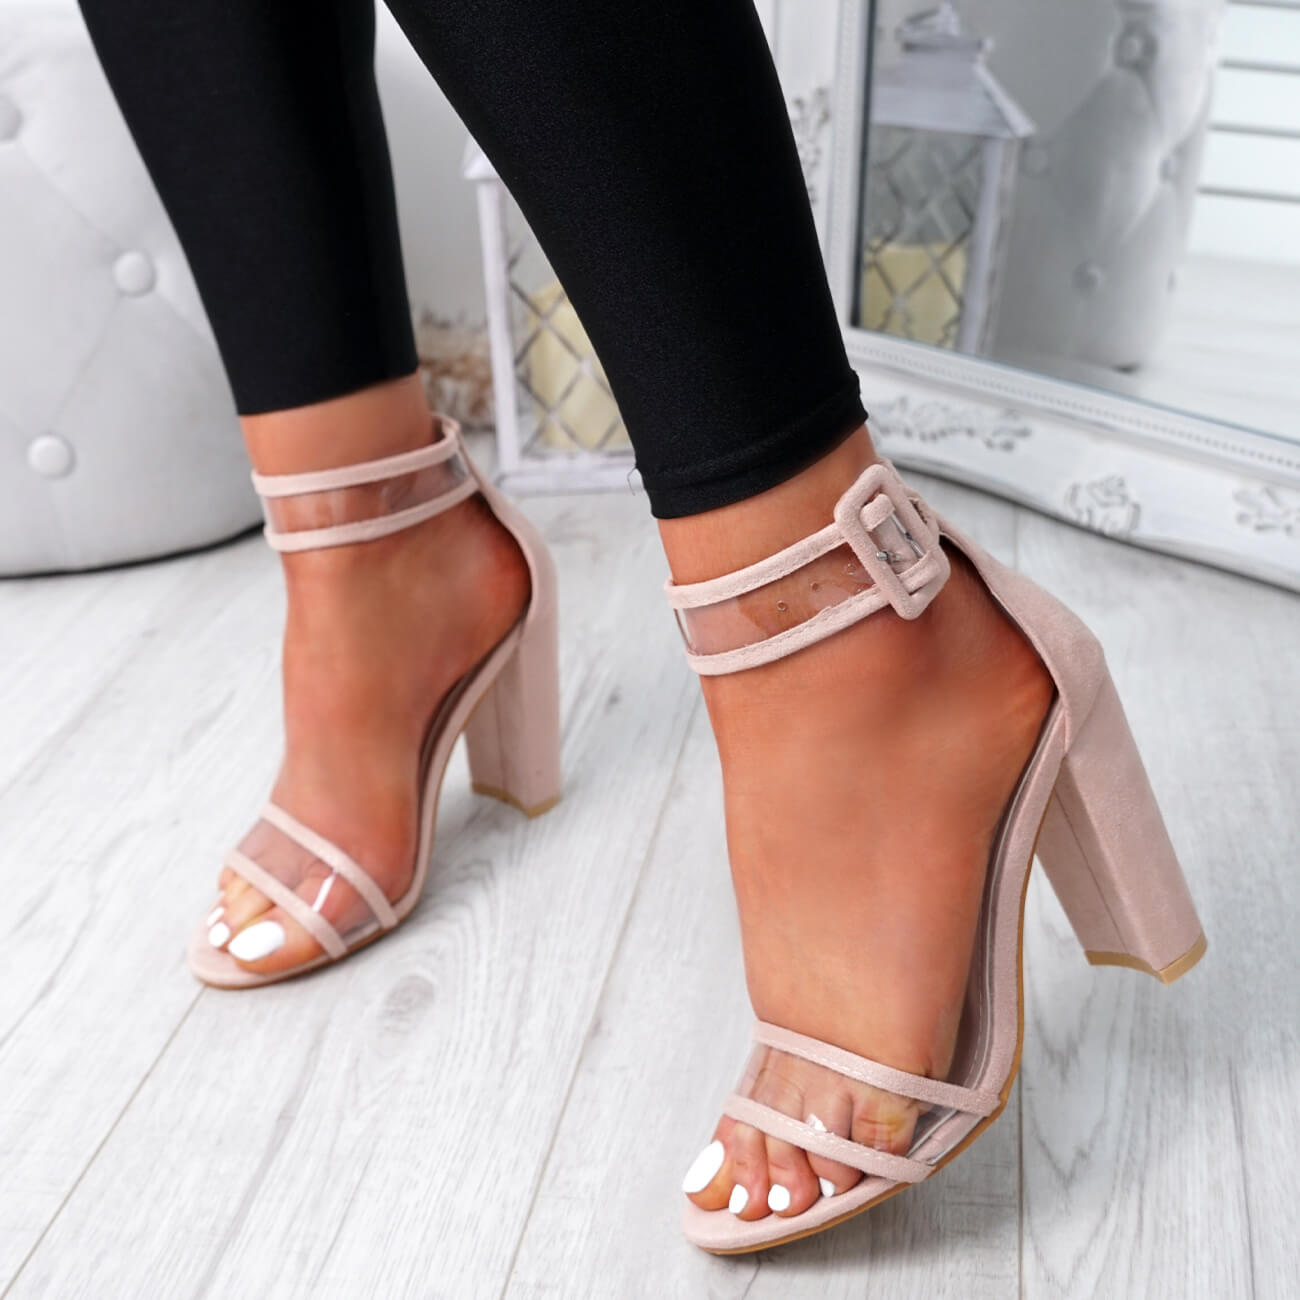 WOMENS-LADIES-ANKLE-STRAP-HIGH-HEEL-SANDALS-PEEP-TOE-CLEAR-FASHION-SHOES-SIZE thumbnail 10